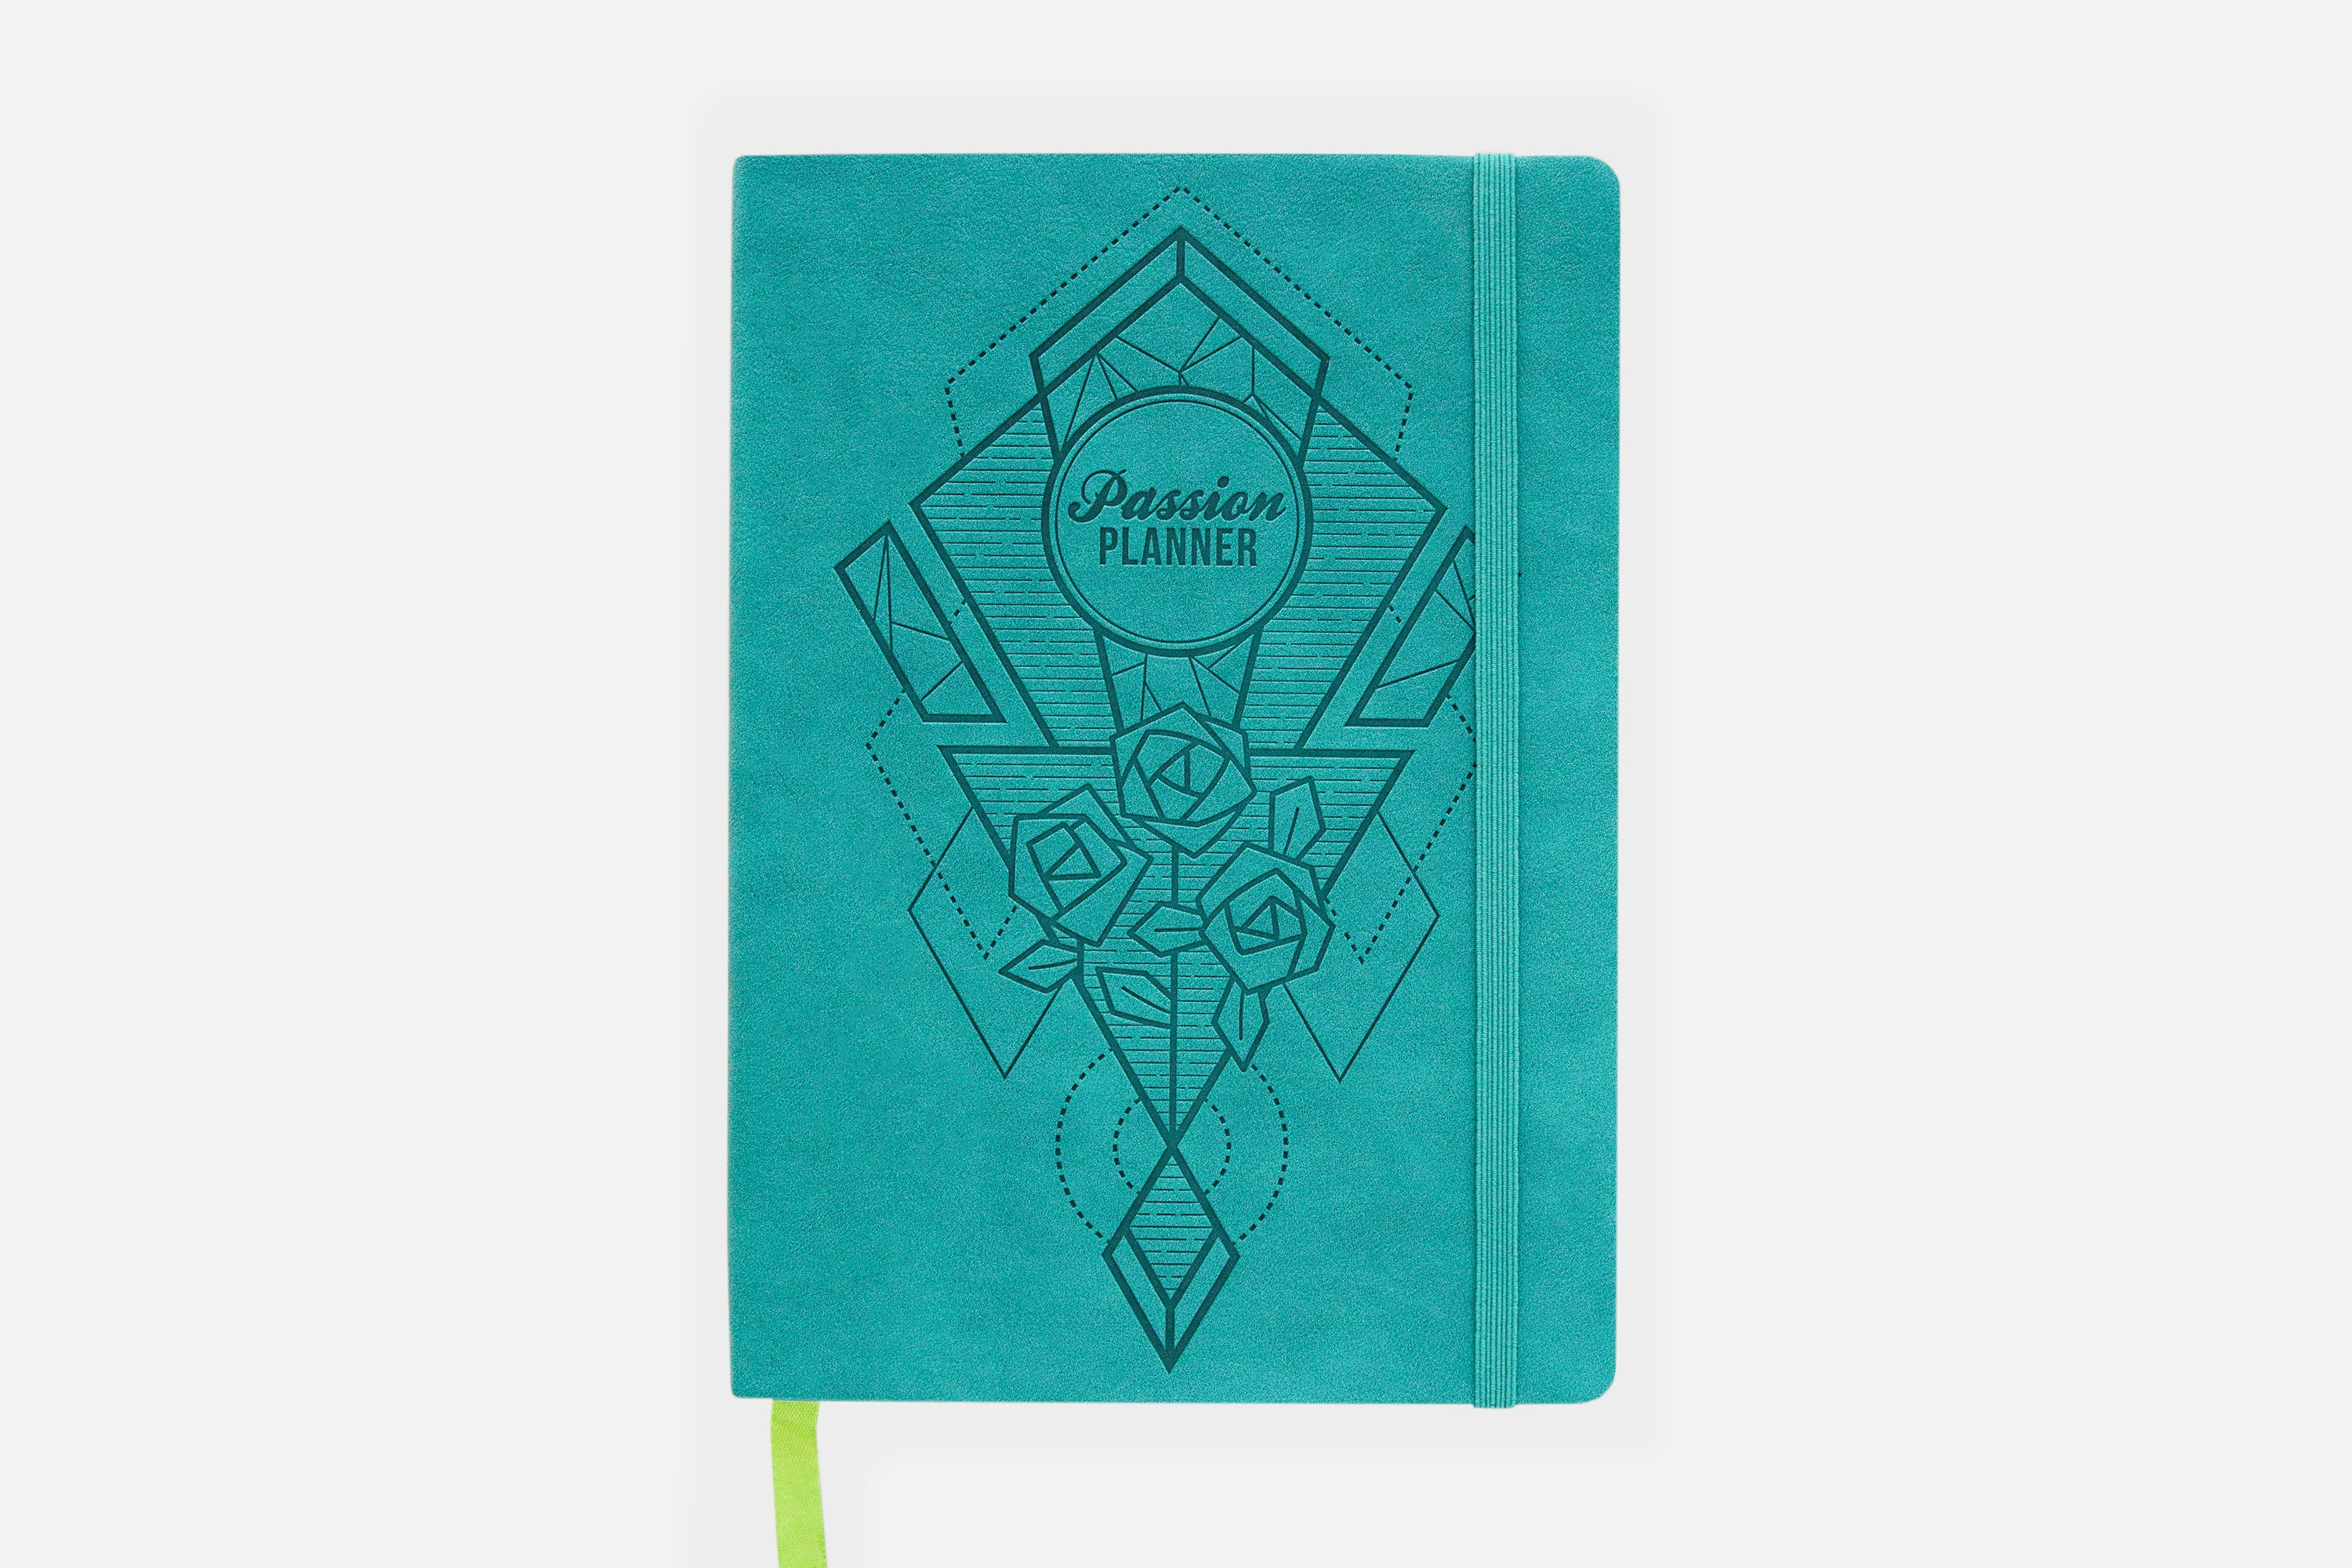 Weekly '20 - '21 Academic Geo Turquoise - Passion Planner